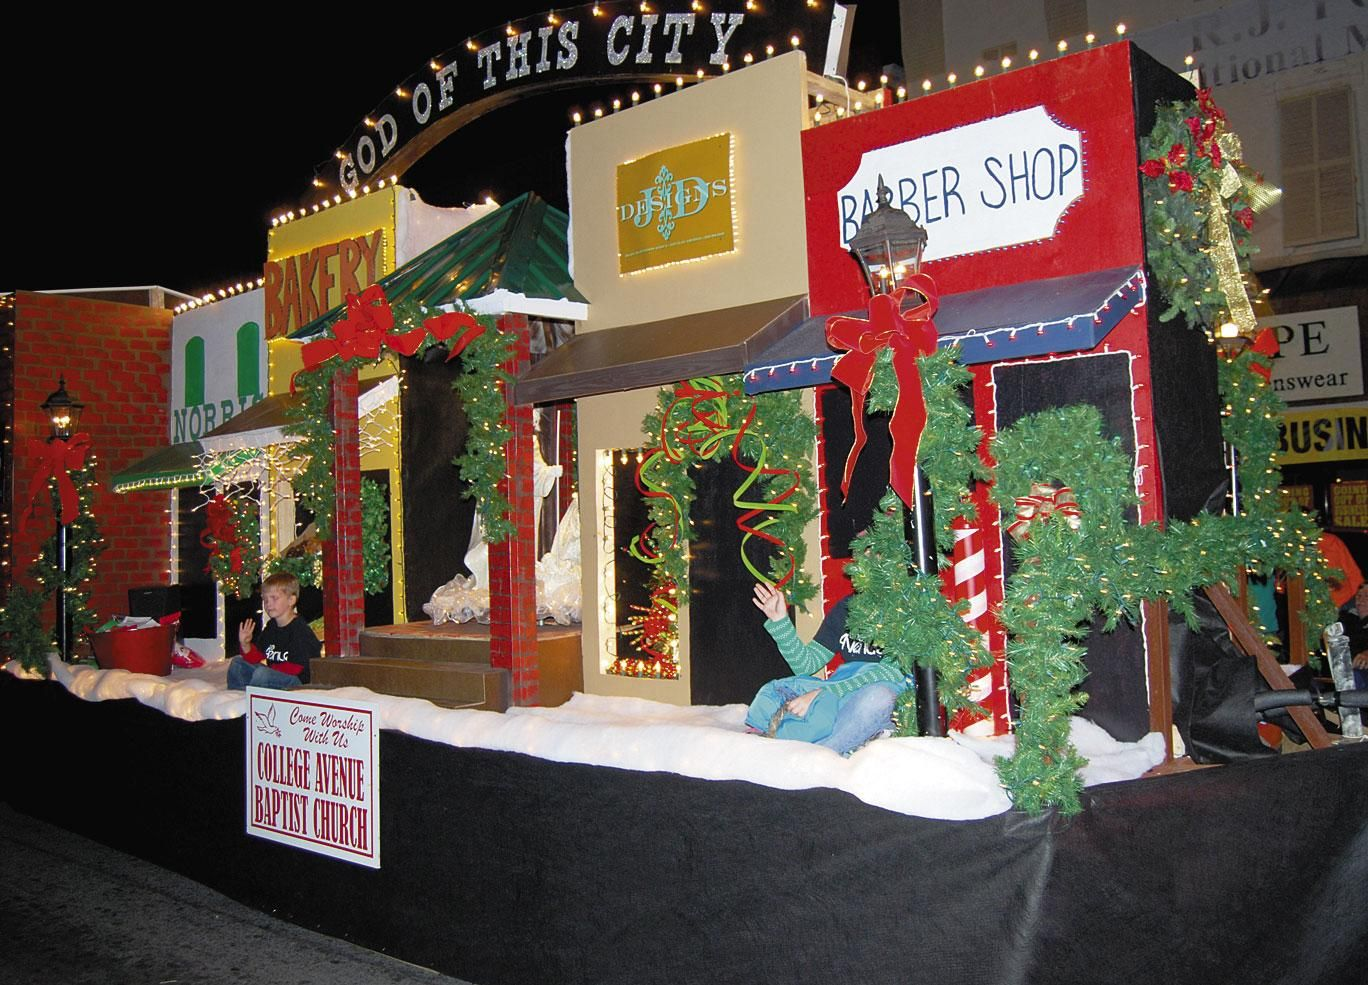 Christmas parade ideas - Picture Christmas Parade Float Themed Floats Remind All Of The Meaning Of The Christmas Season Christmas Pinterest Christmas Parade Floats